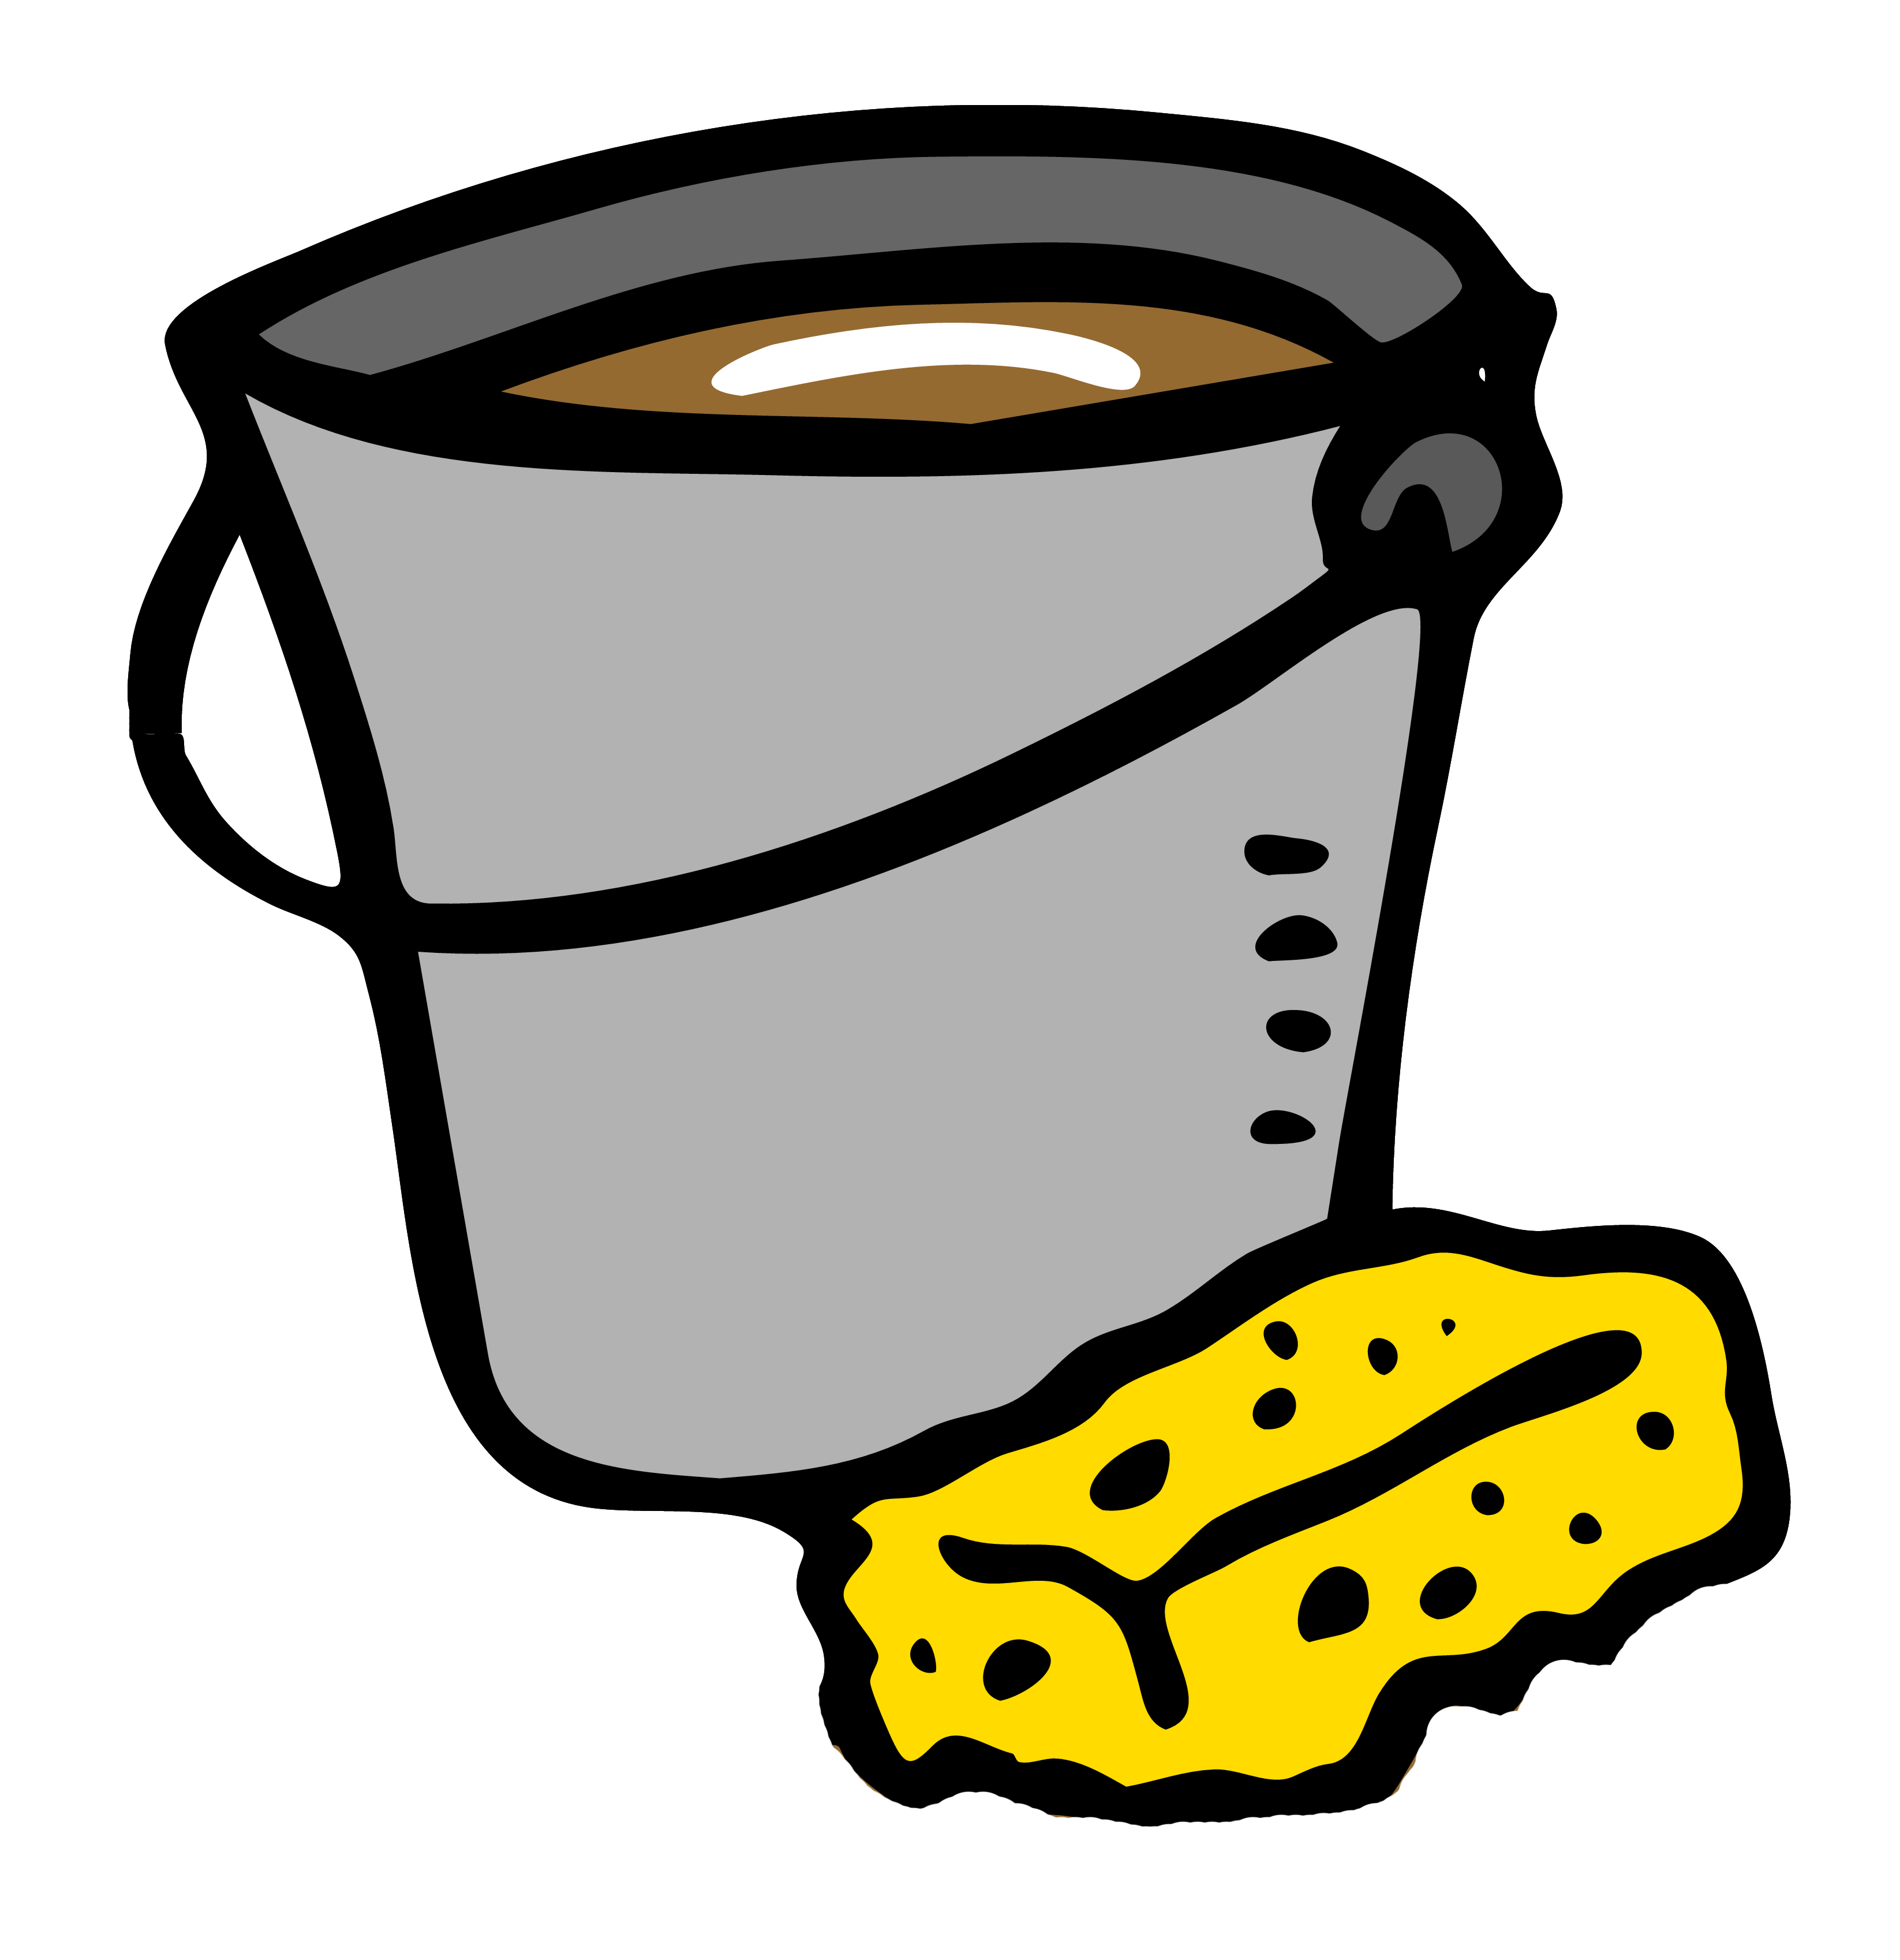 Dirty house clipart png free download The bucket of dirty water   TheGodGuy png free download